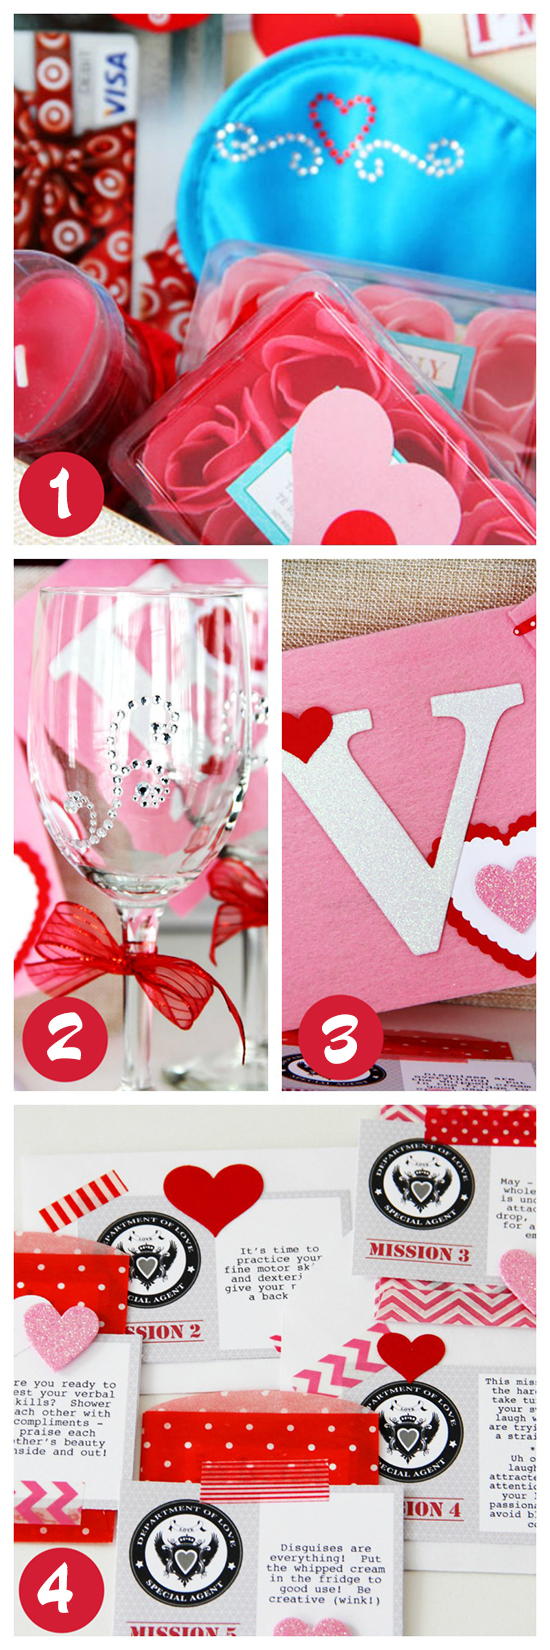 Candice-VDayGiveaway-Basket Collage 2- numbered